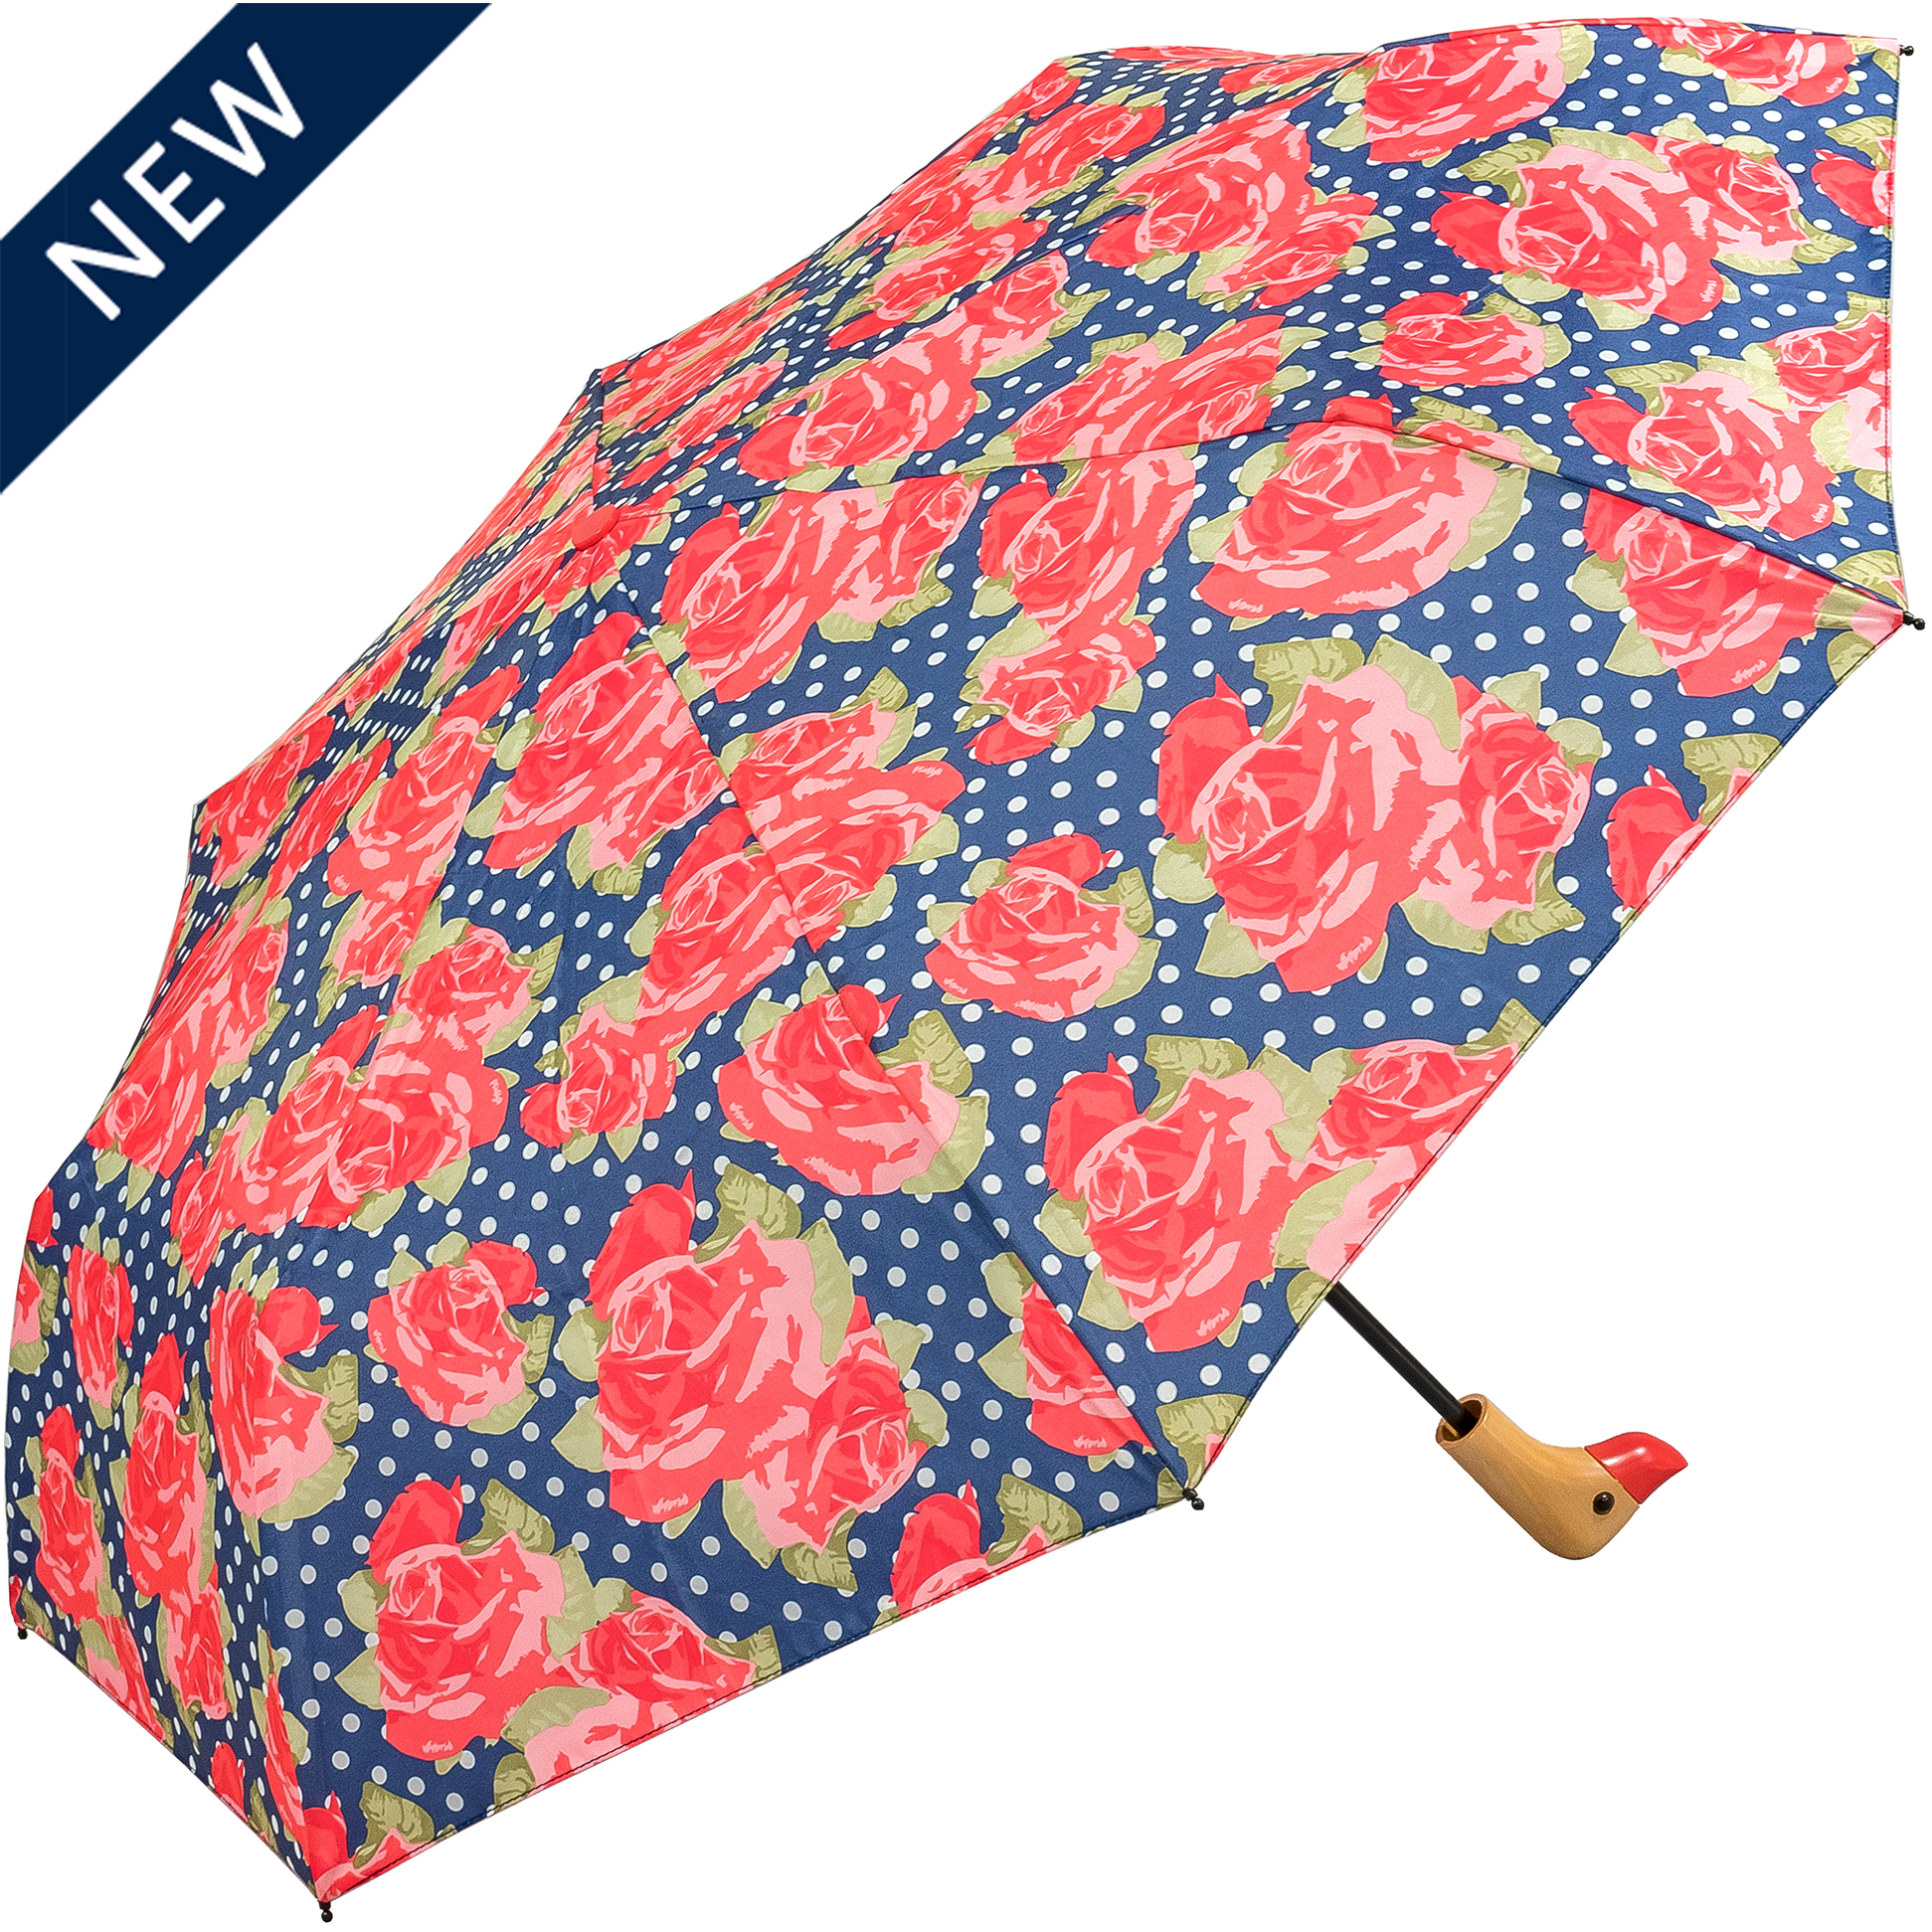 Duck Head Handle Large Rose Compact Womens Umbrella(31902-R)